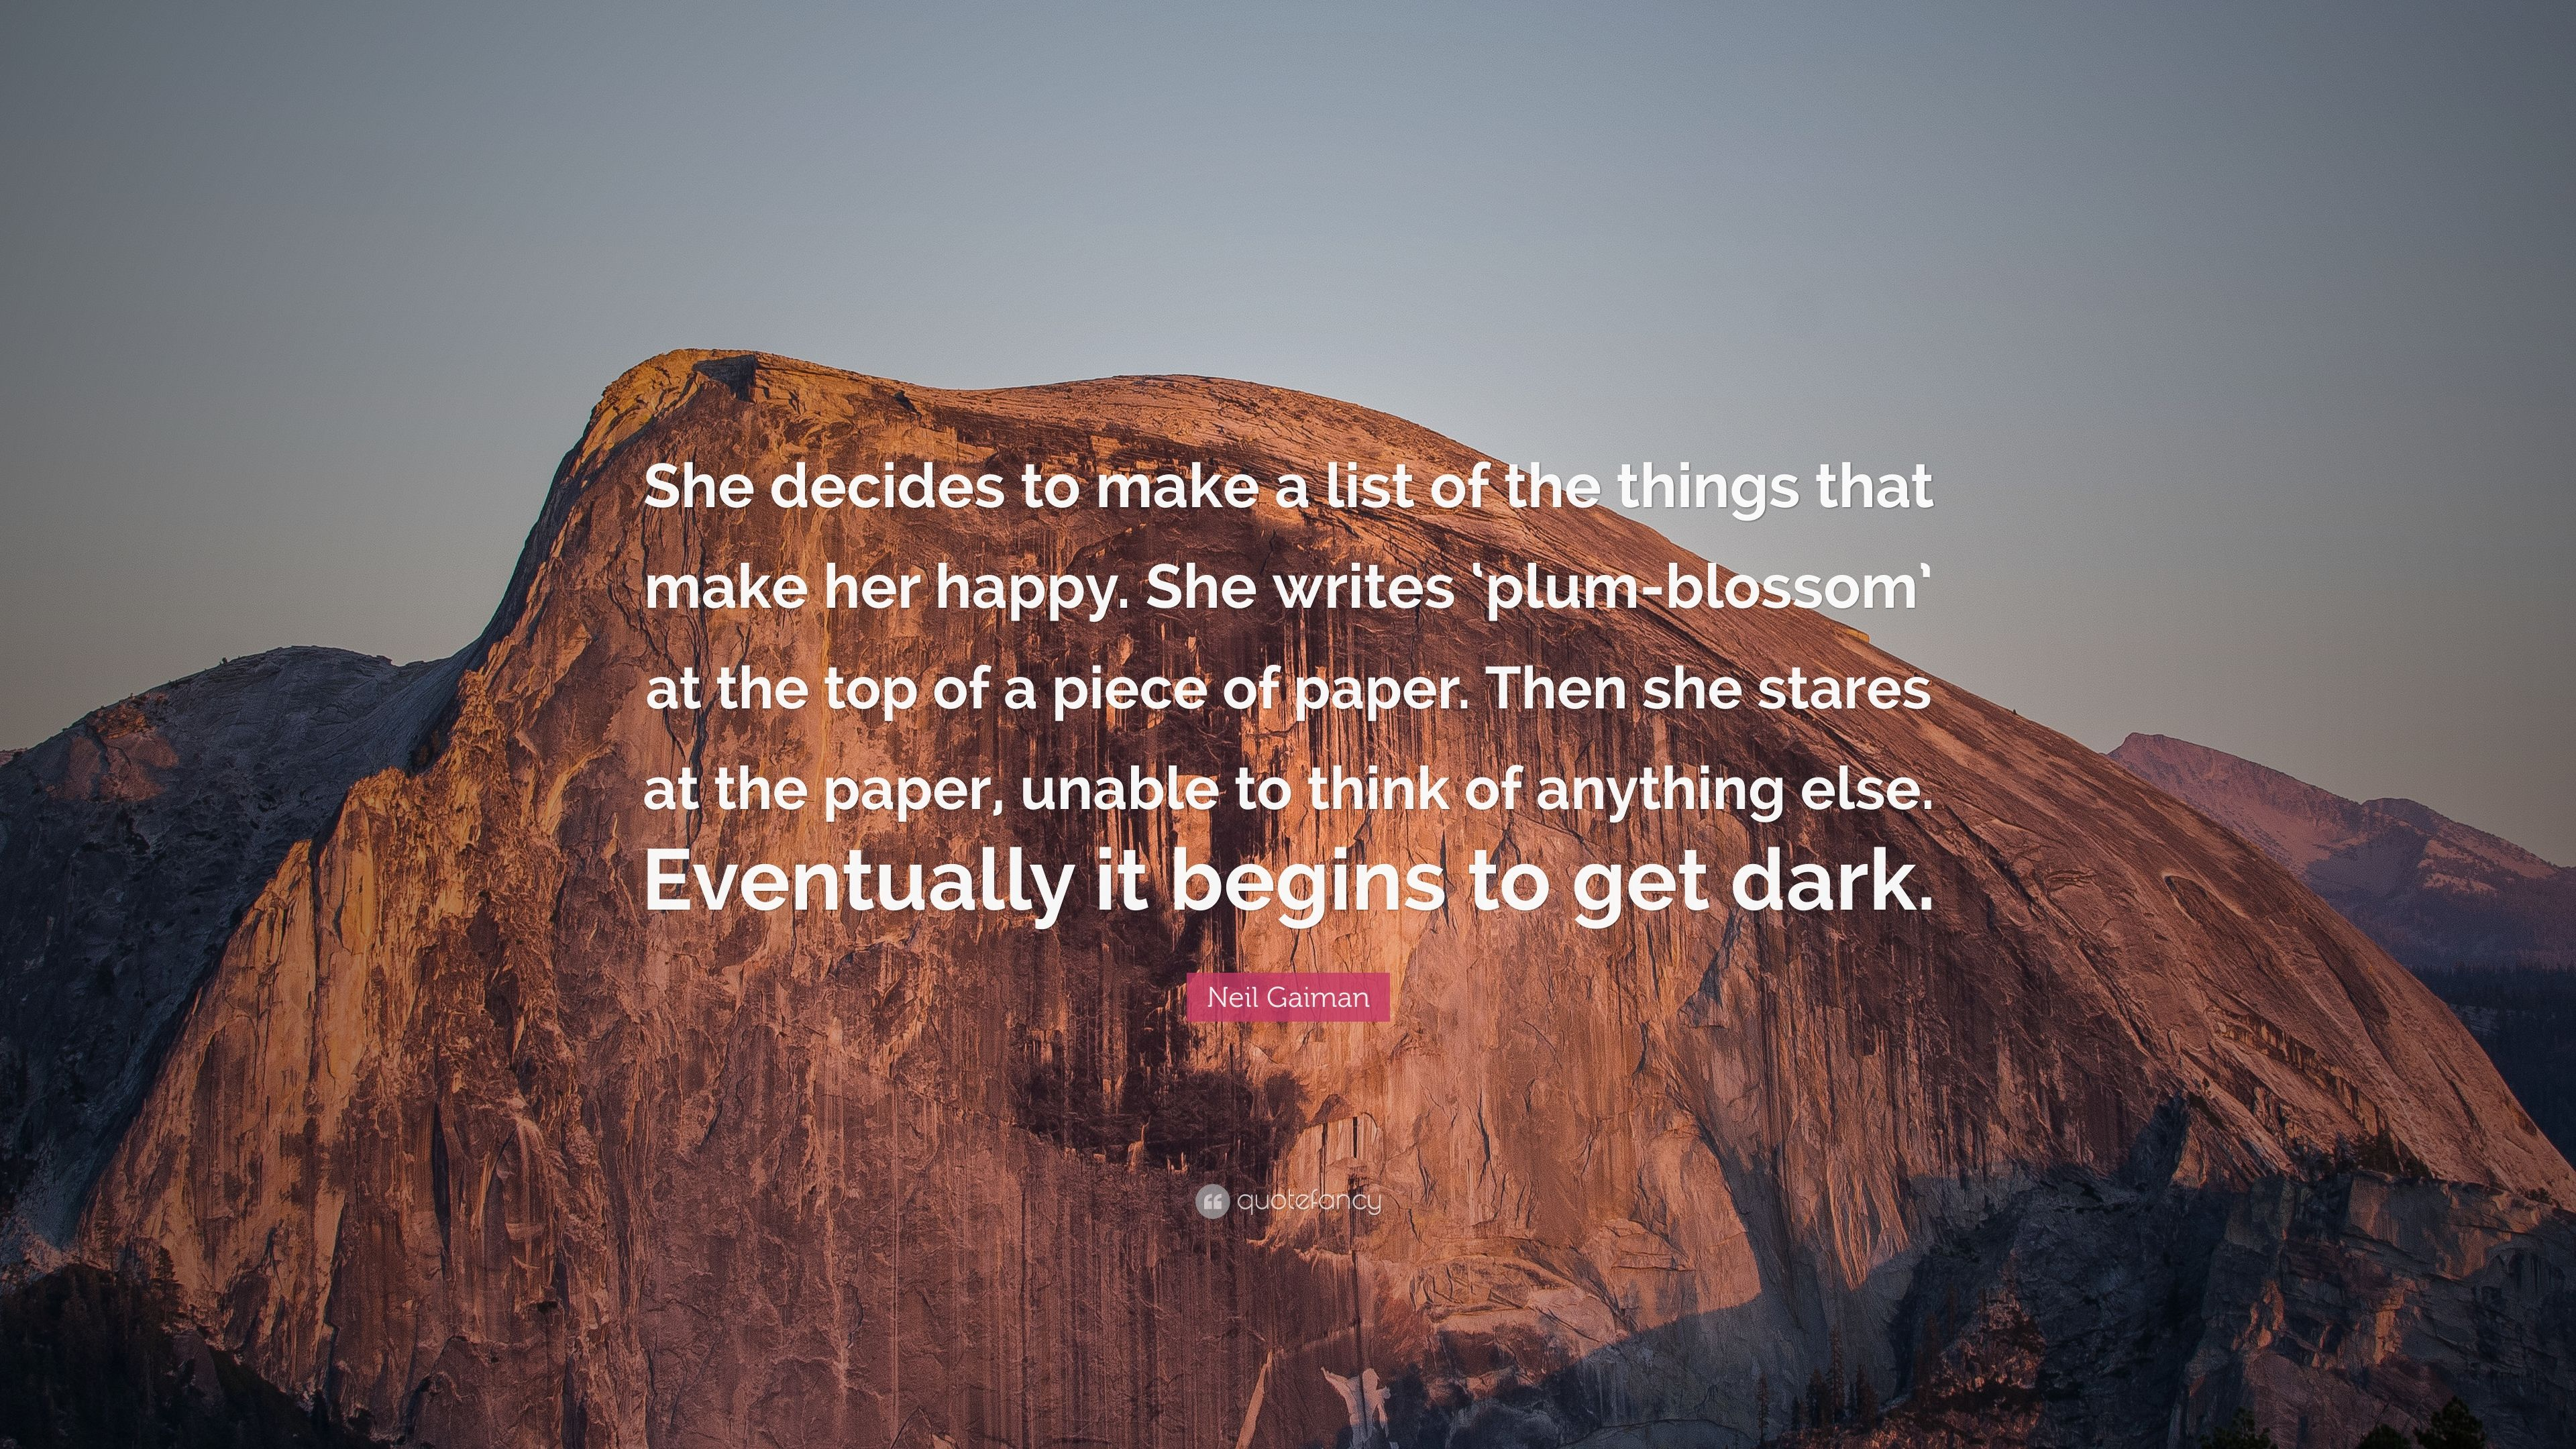 neil gaiman quote she decides to make a list of the things that